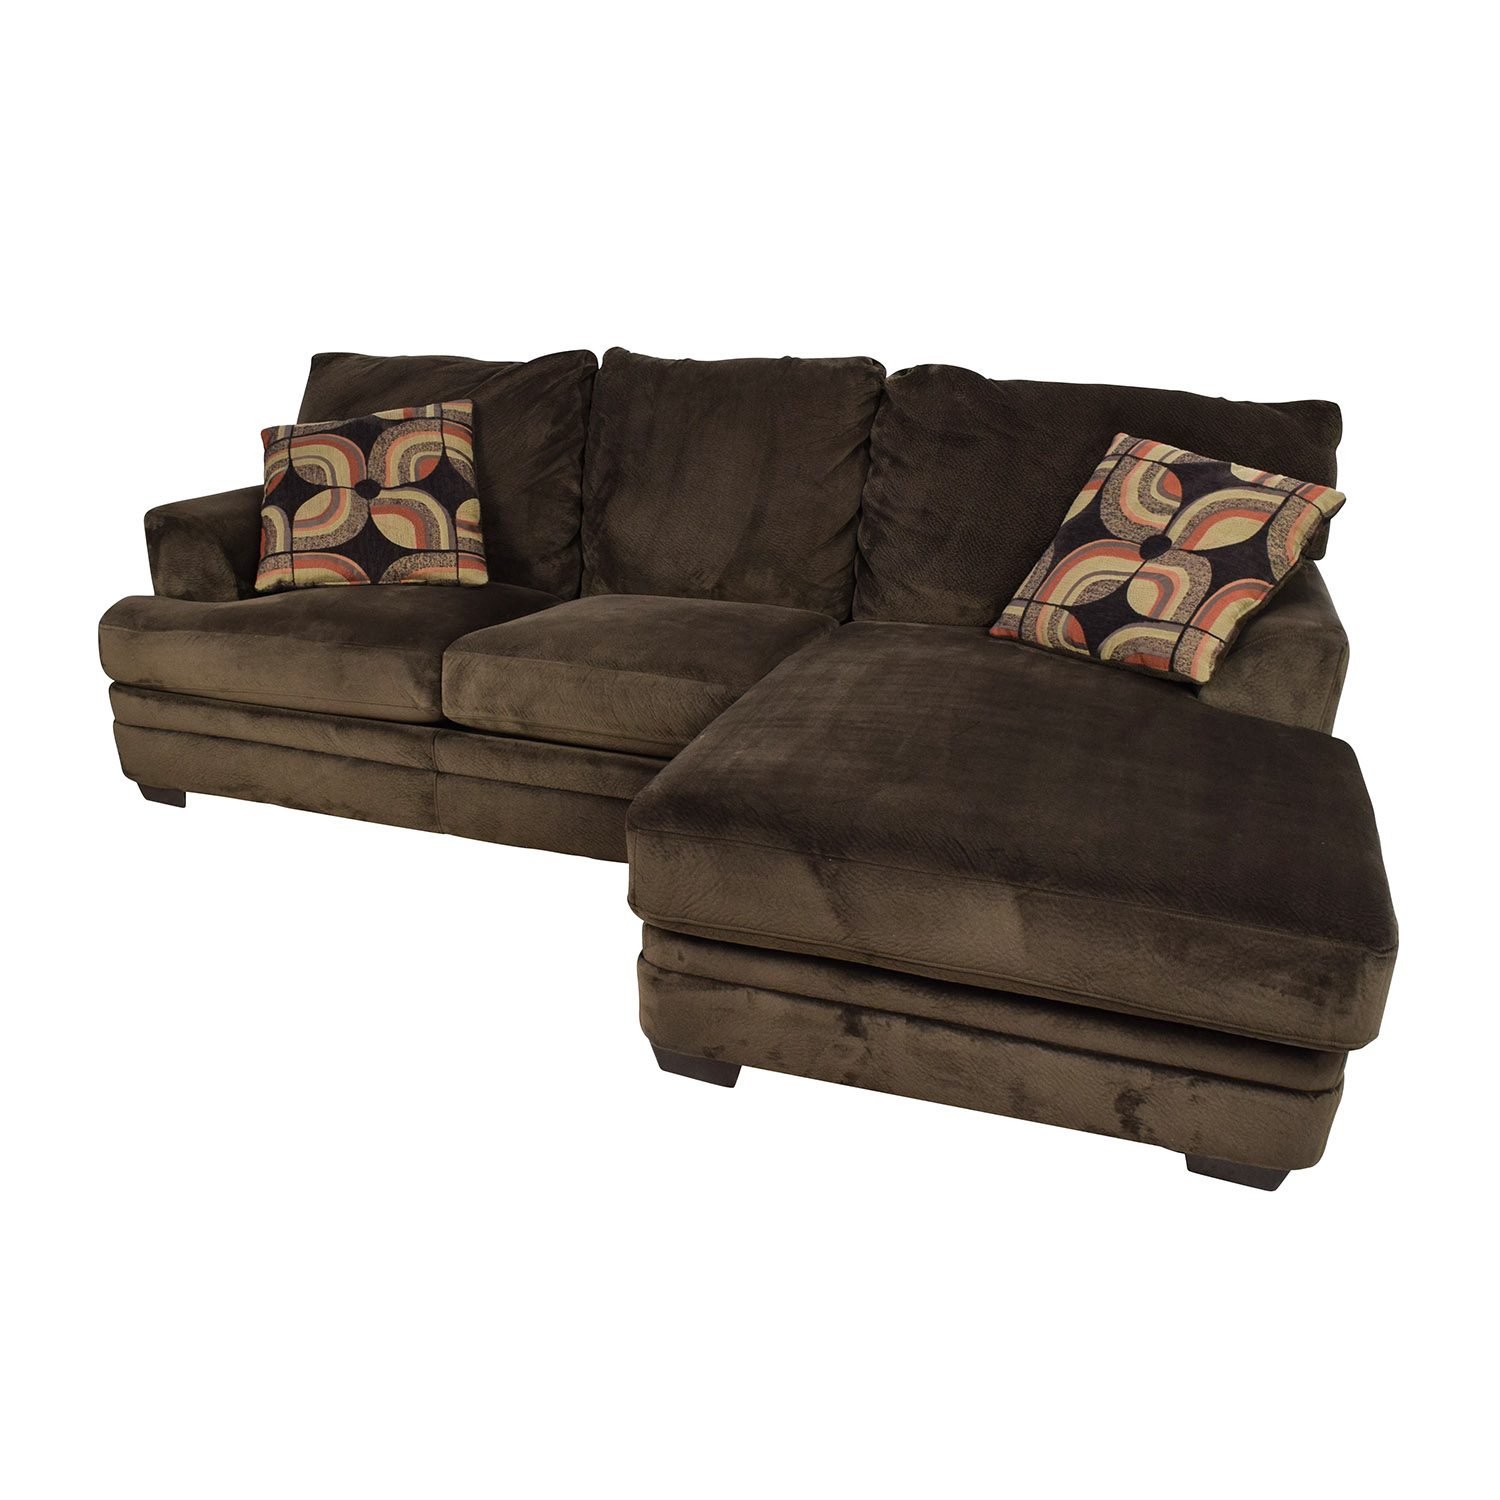 bobs furniture sleeper sofa olive futon shop